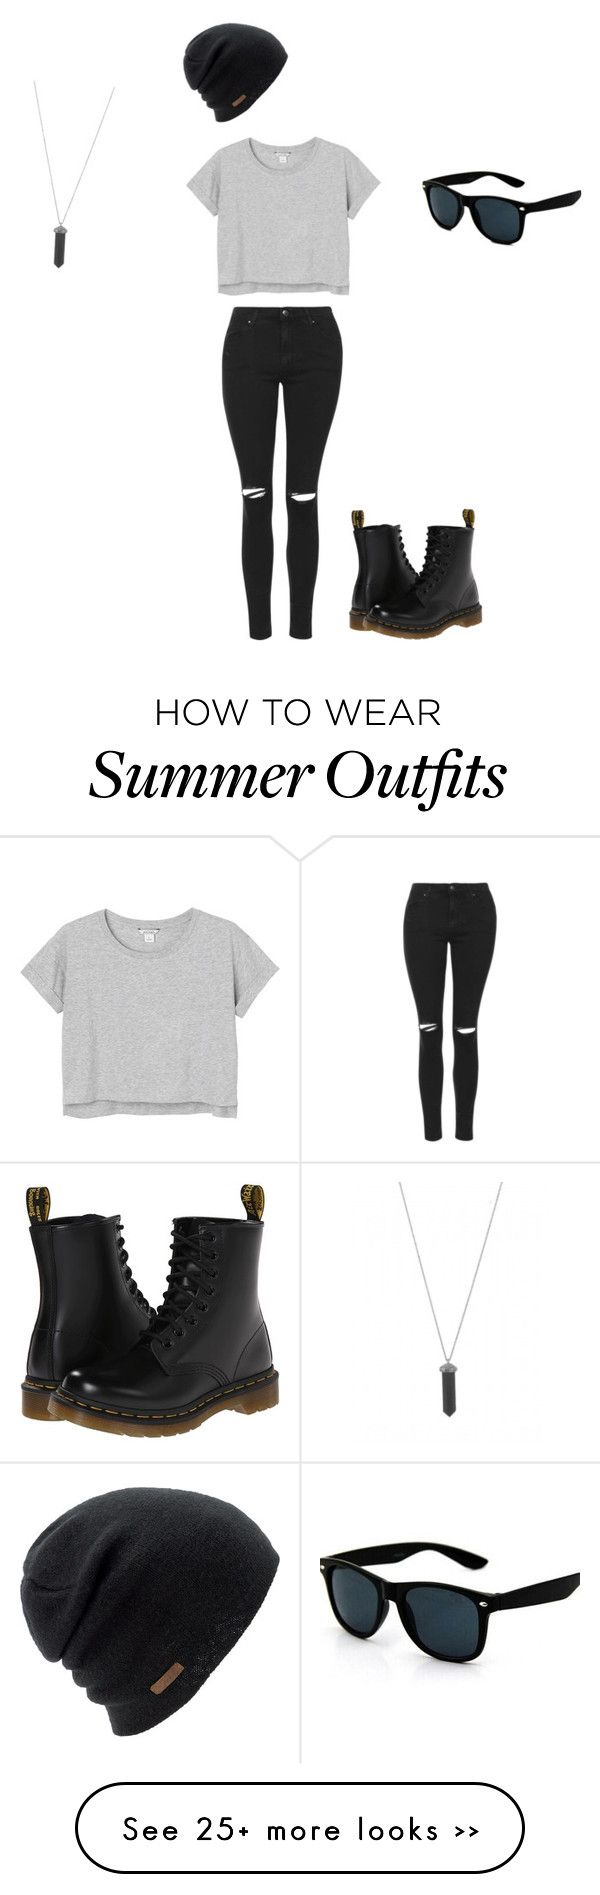 """Outfit #1"" by katiej1028 on Polyvore featuring Topshop, Monki, Dr. Martens, Coal and Karen Kane"